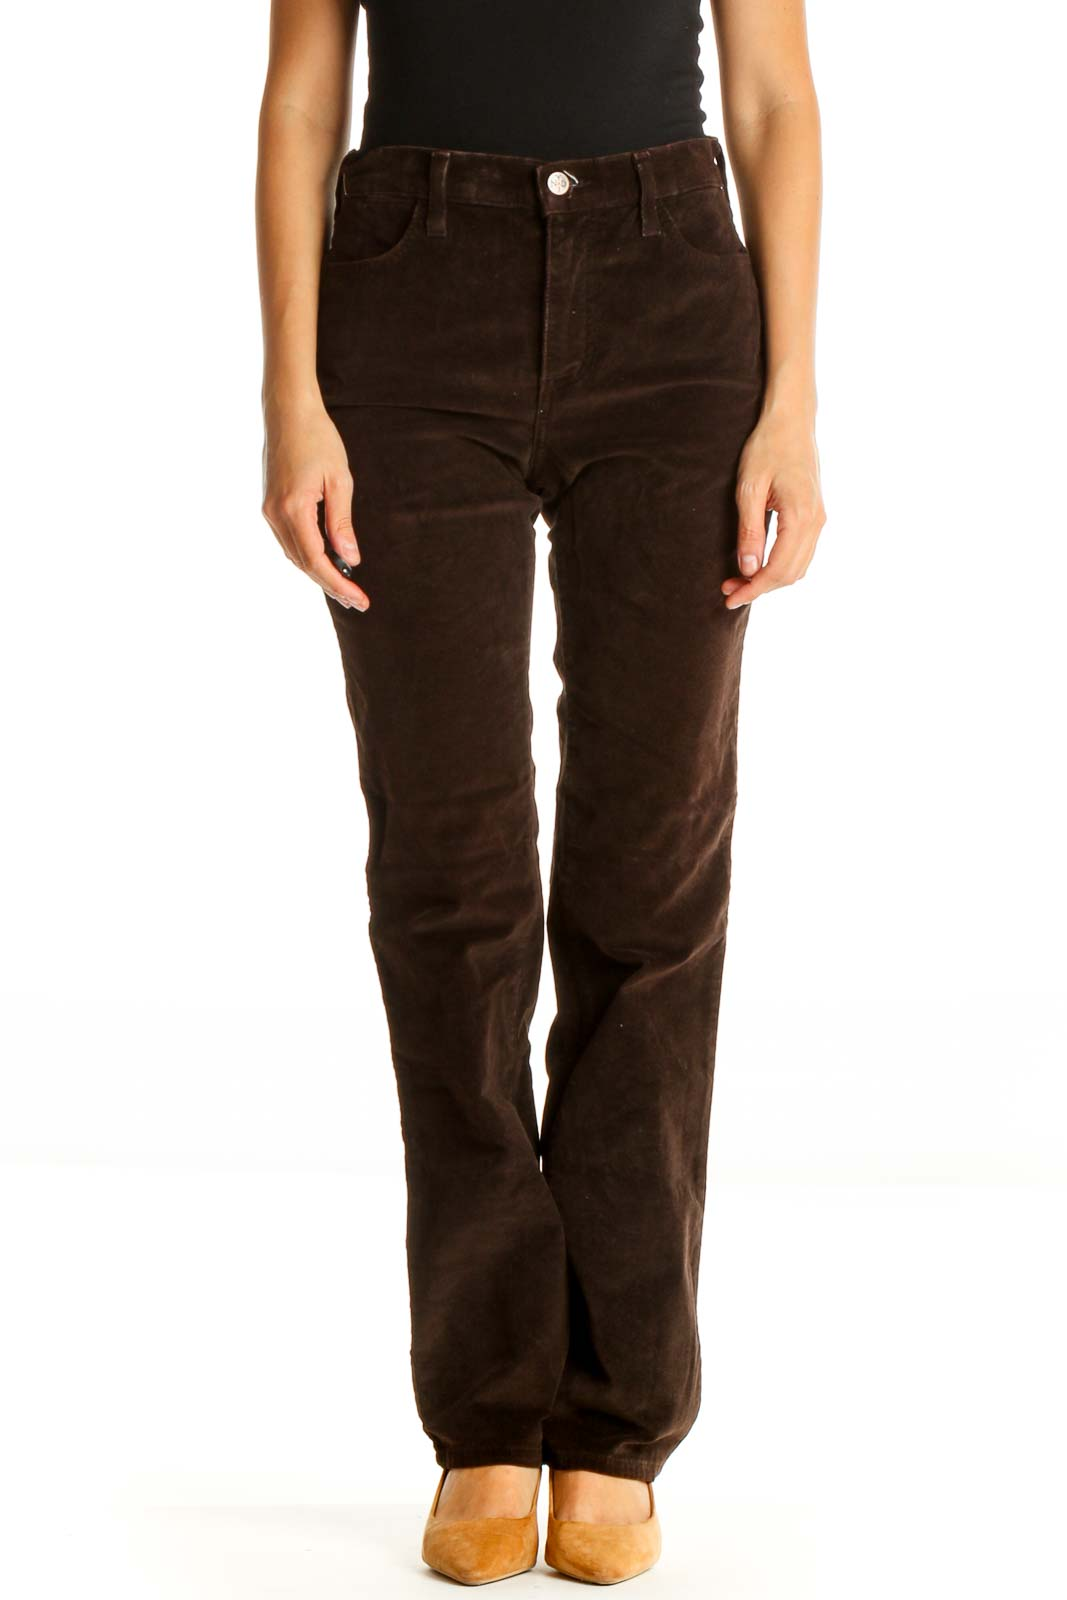 Brown Solid All Day Wear Pants Front